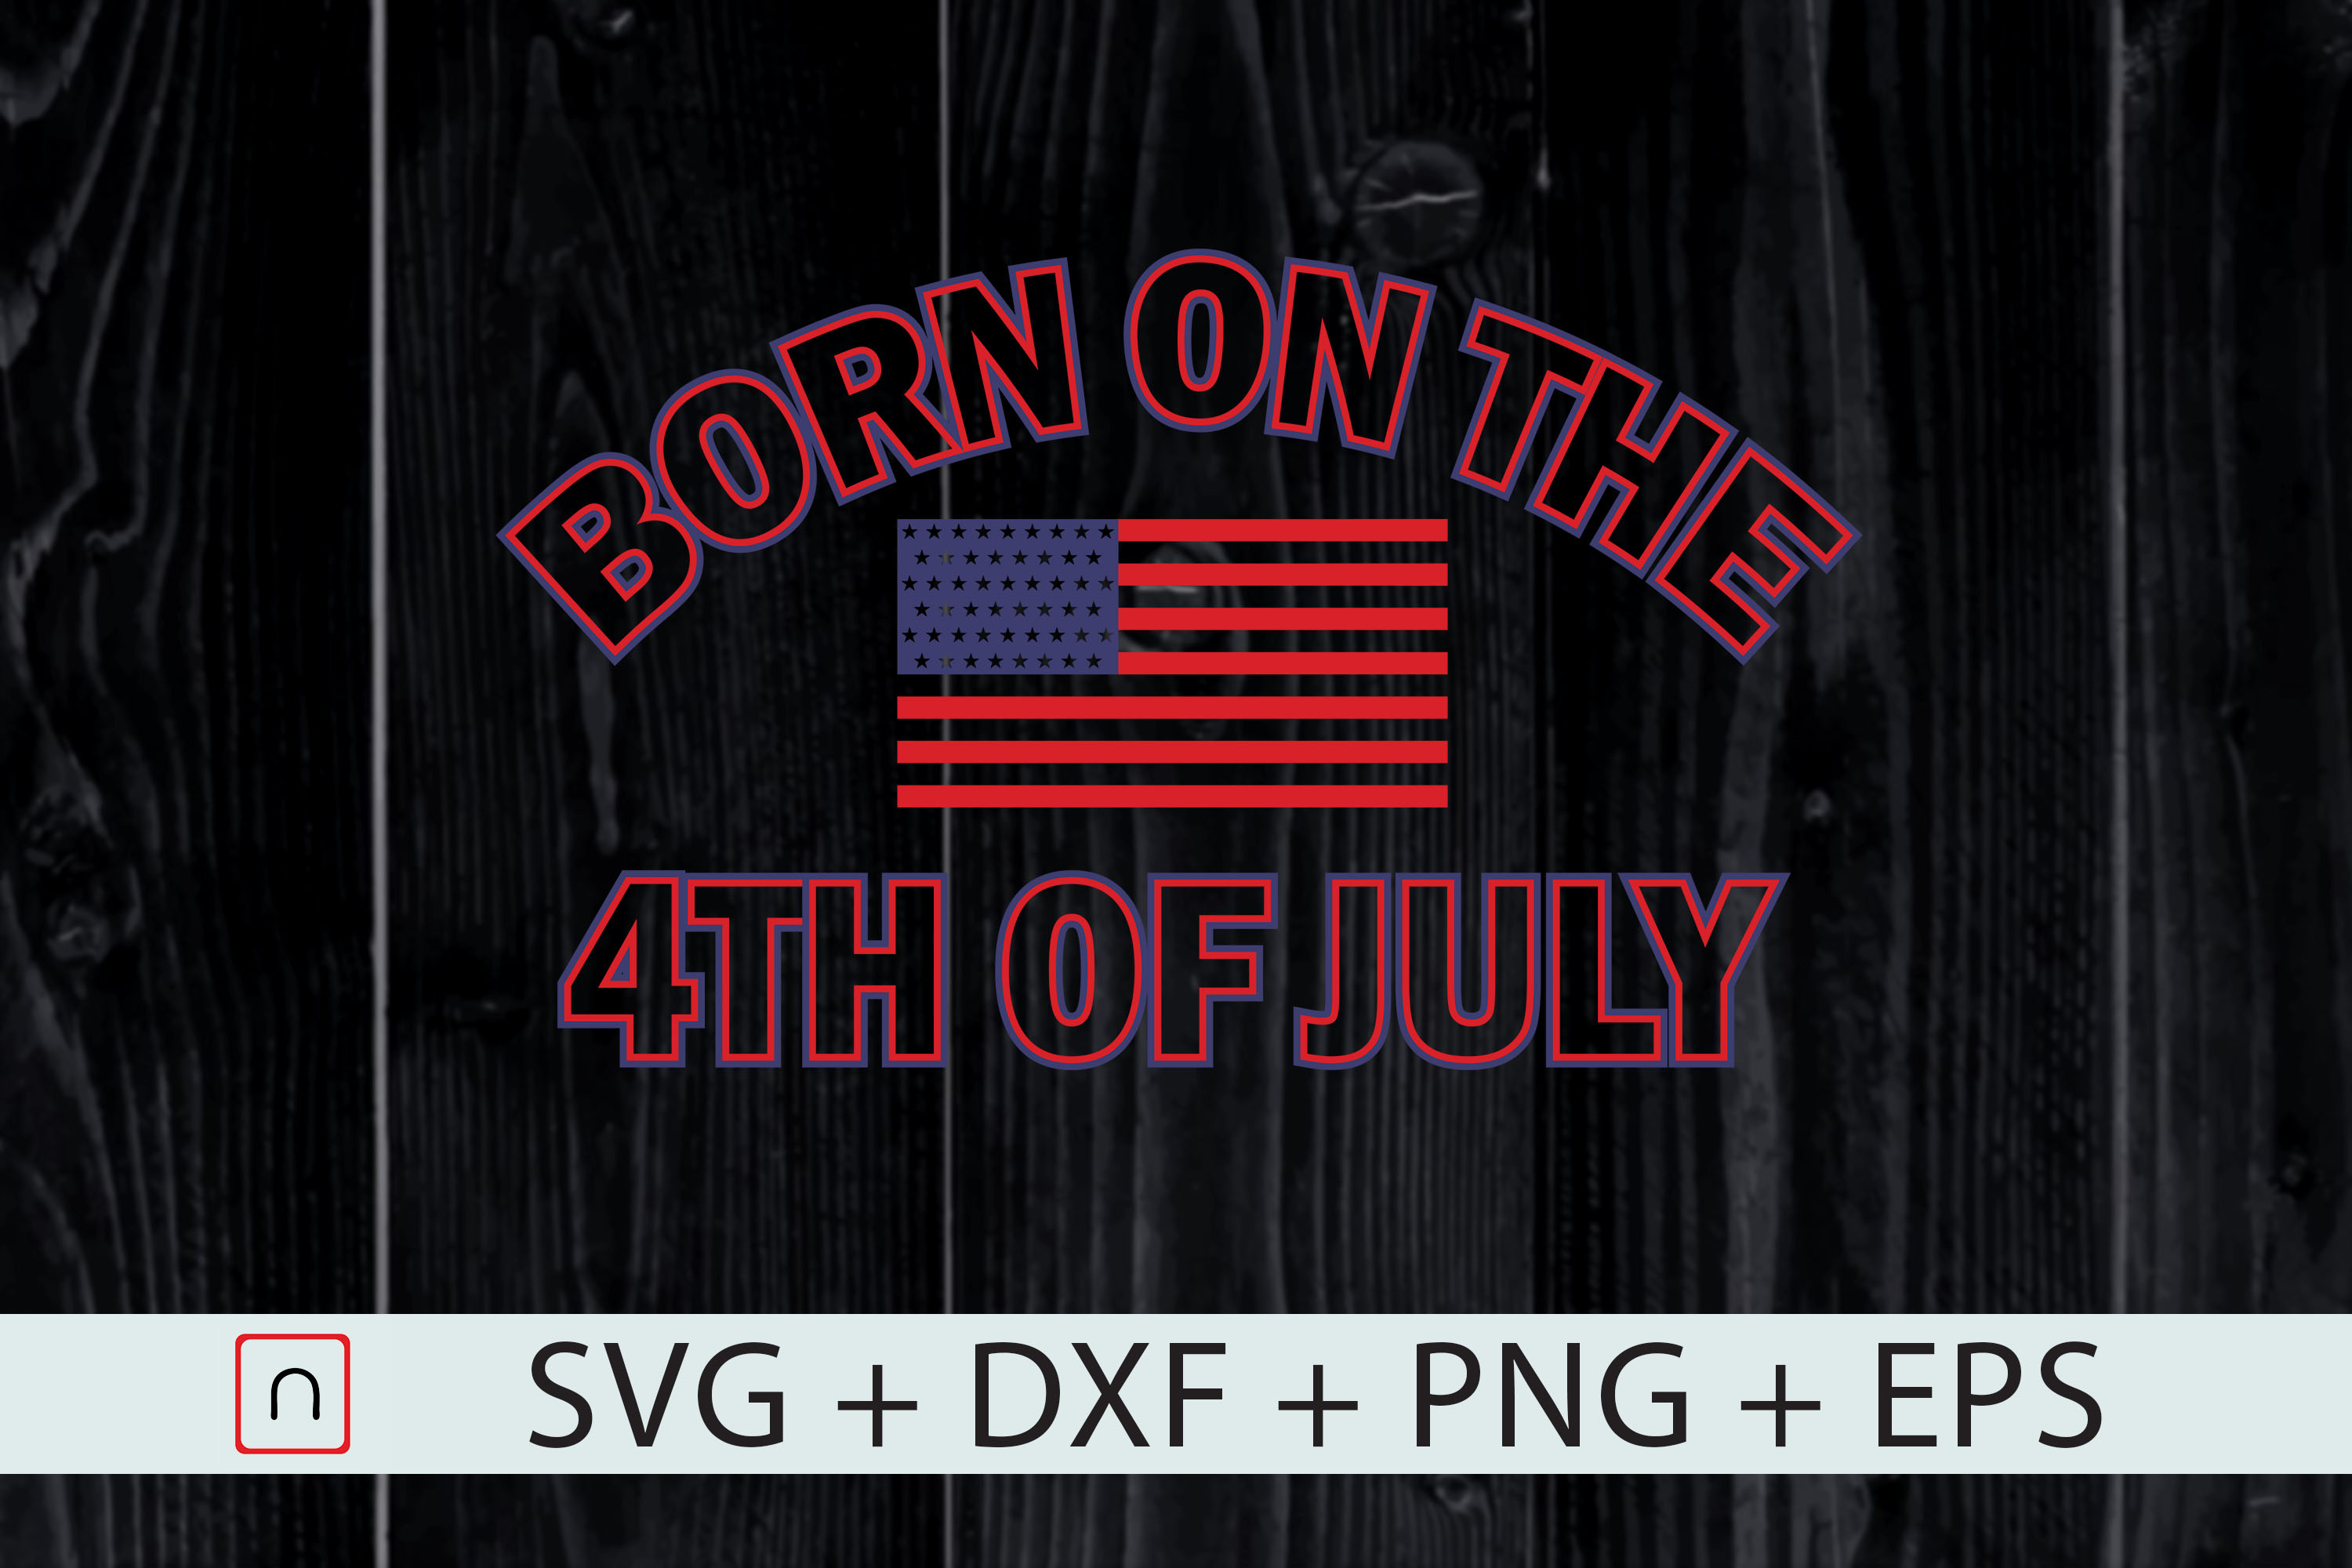 Download Free Born On The 4th Of July Birthday Graphic By Novalia Creative for Cricut Explore, Silhouette and other cutting machines.